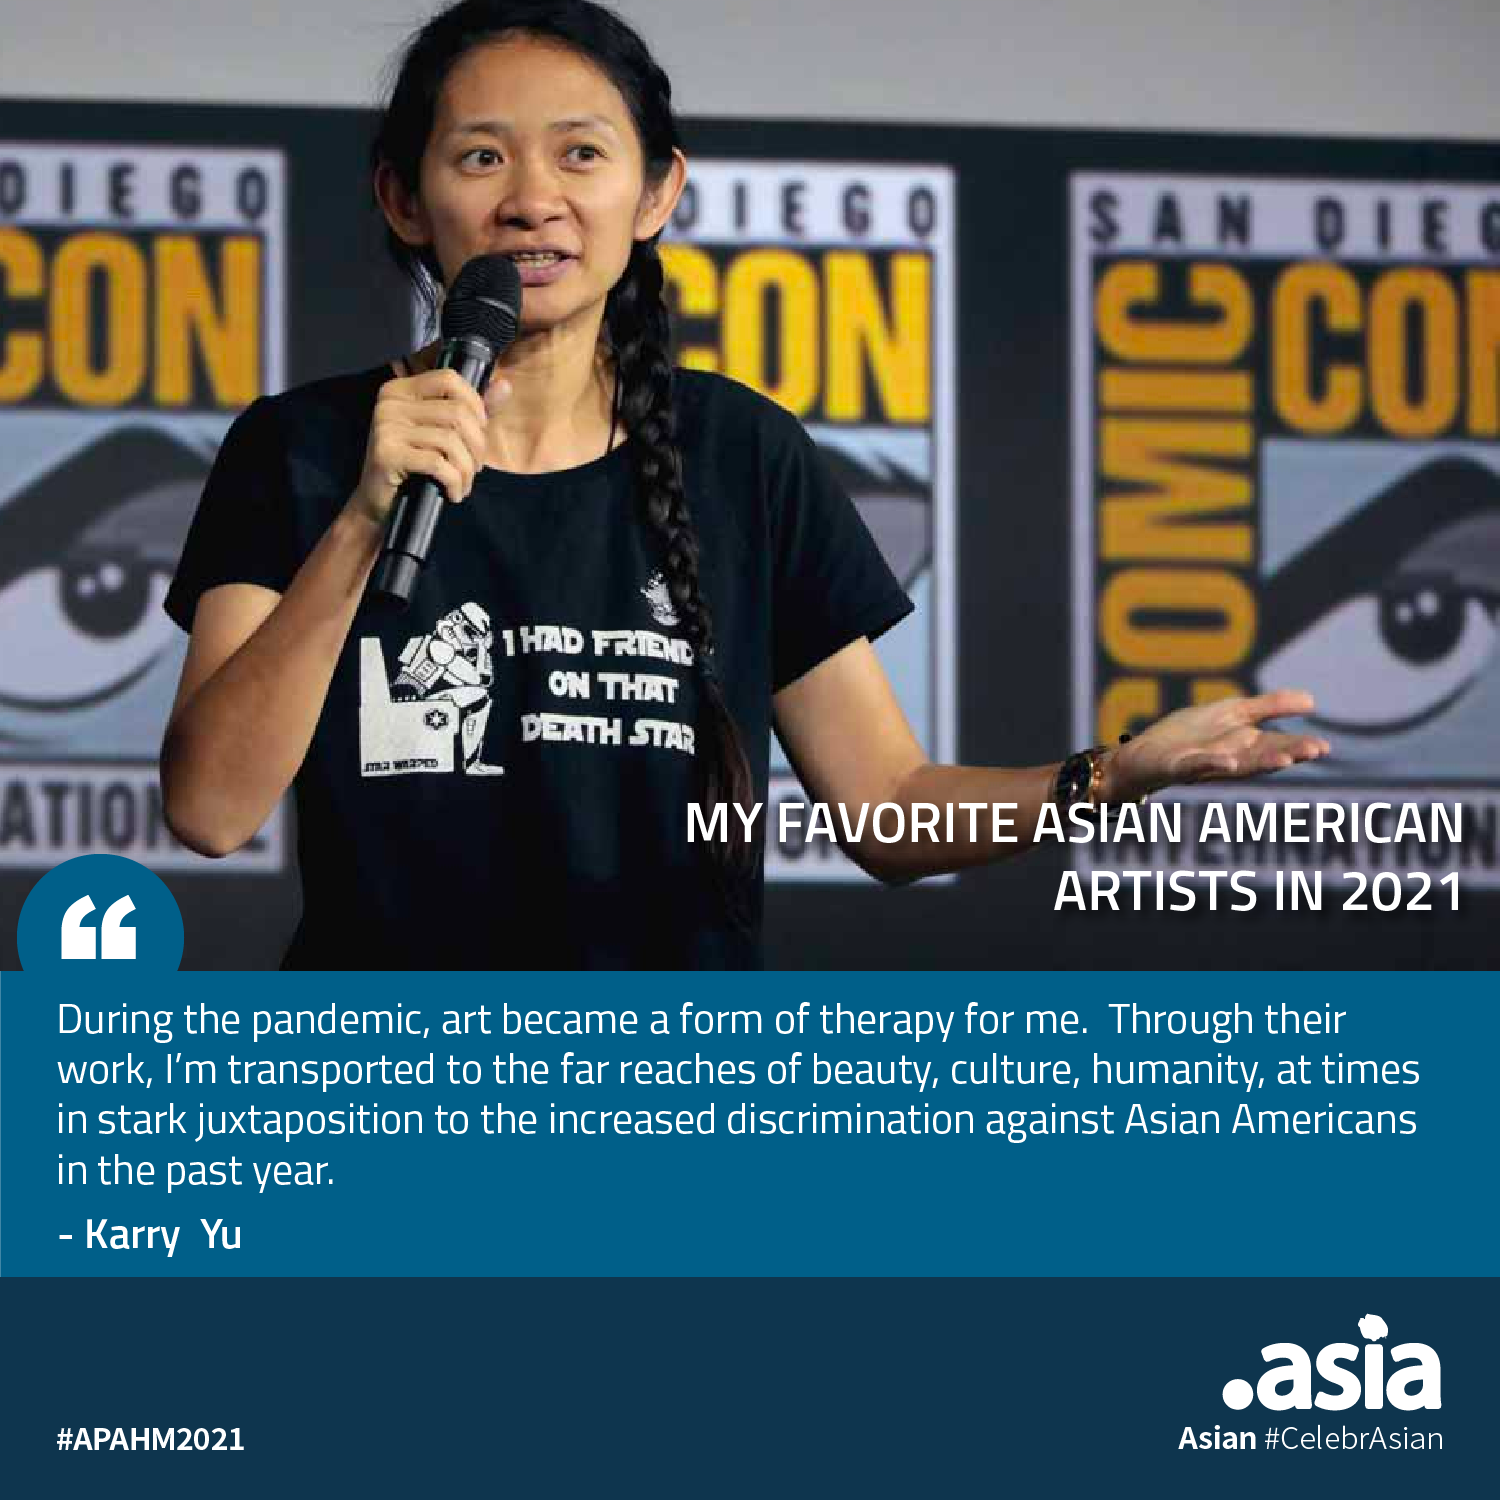 My Favorite Asian American Artists in 2021